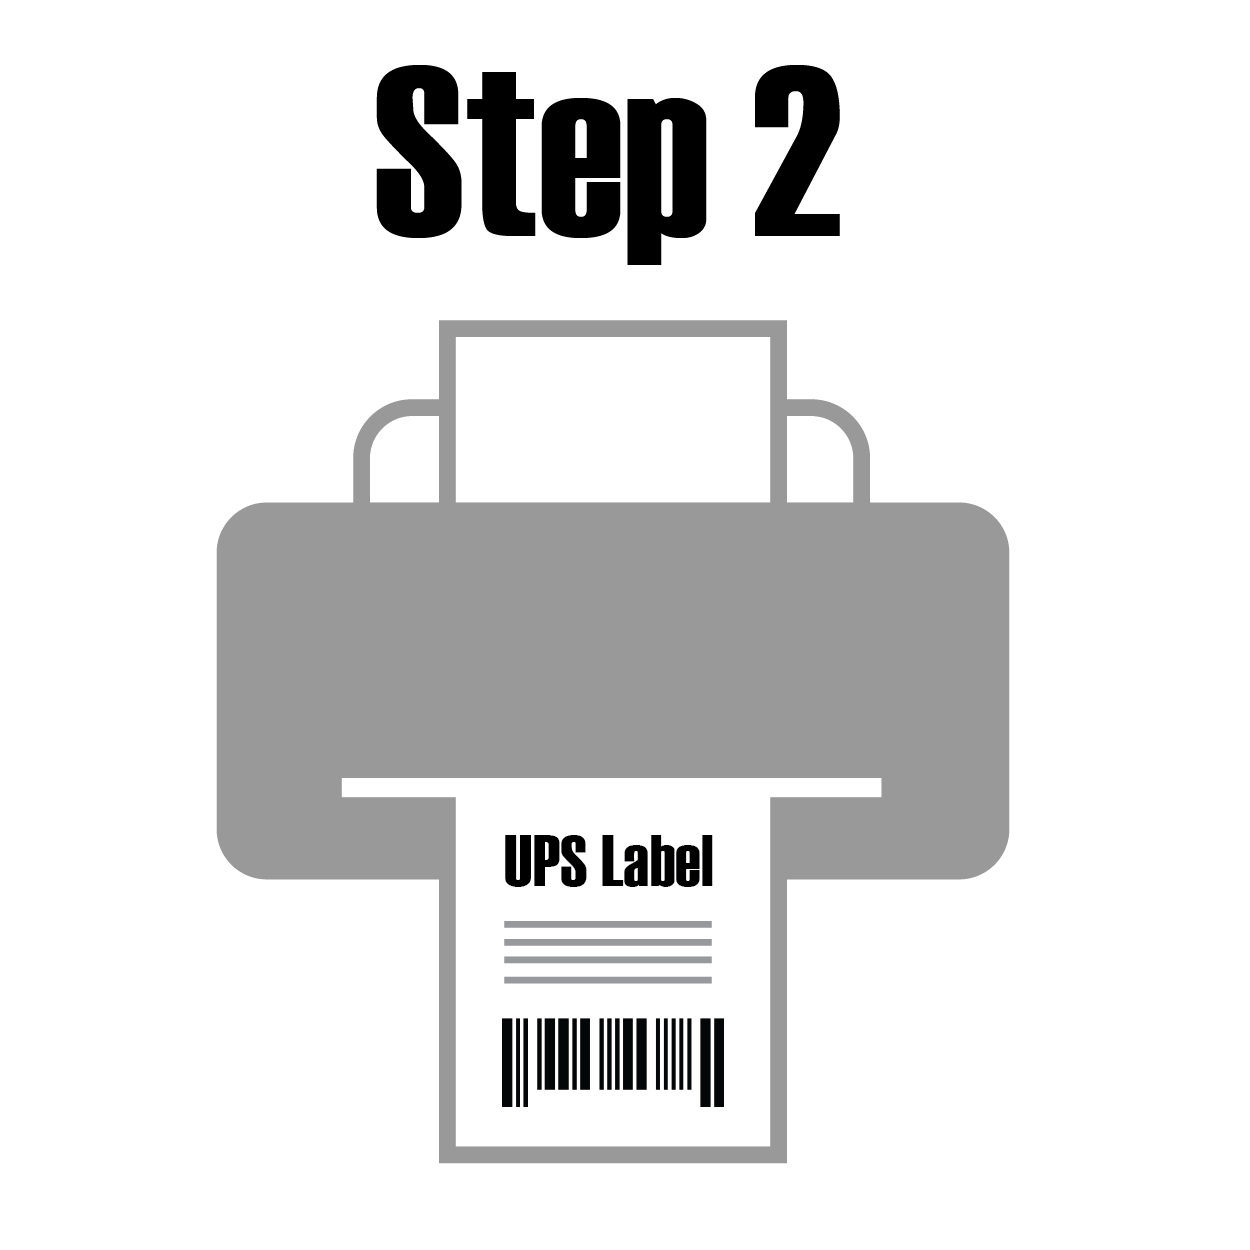 Print Out Repair Label